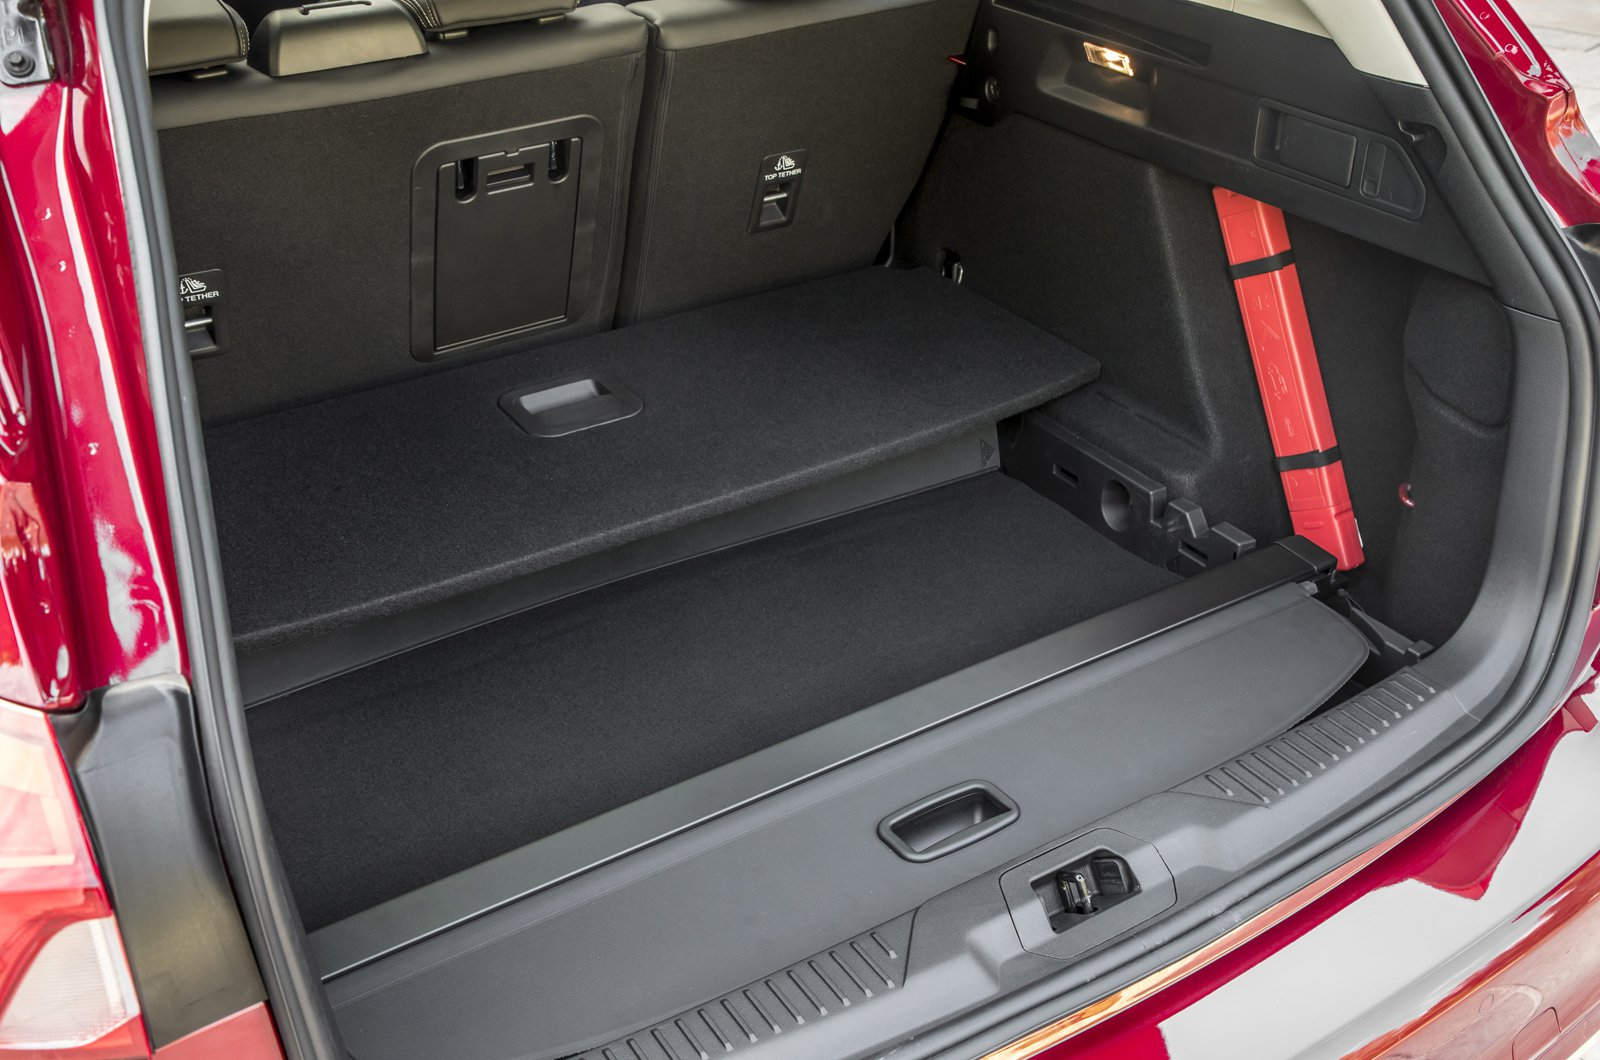 Ford Focus Estate underfloor storage